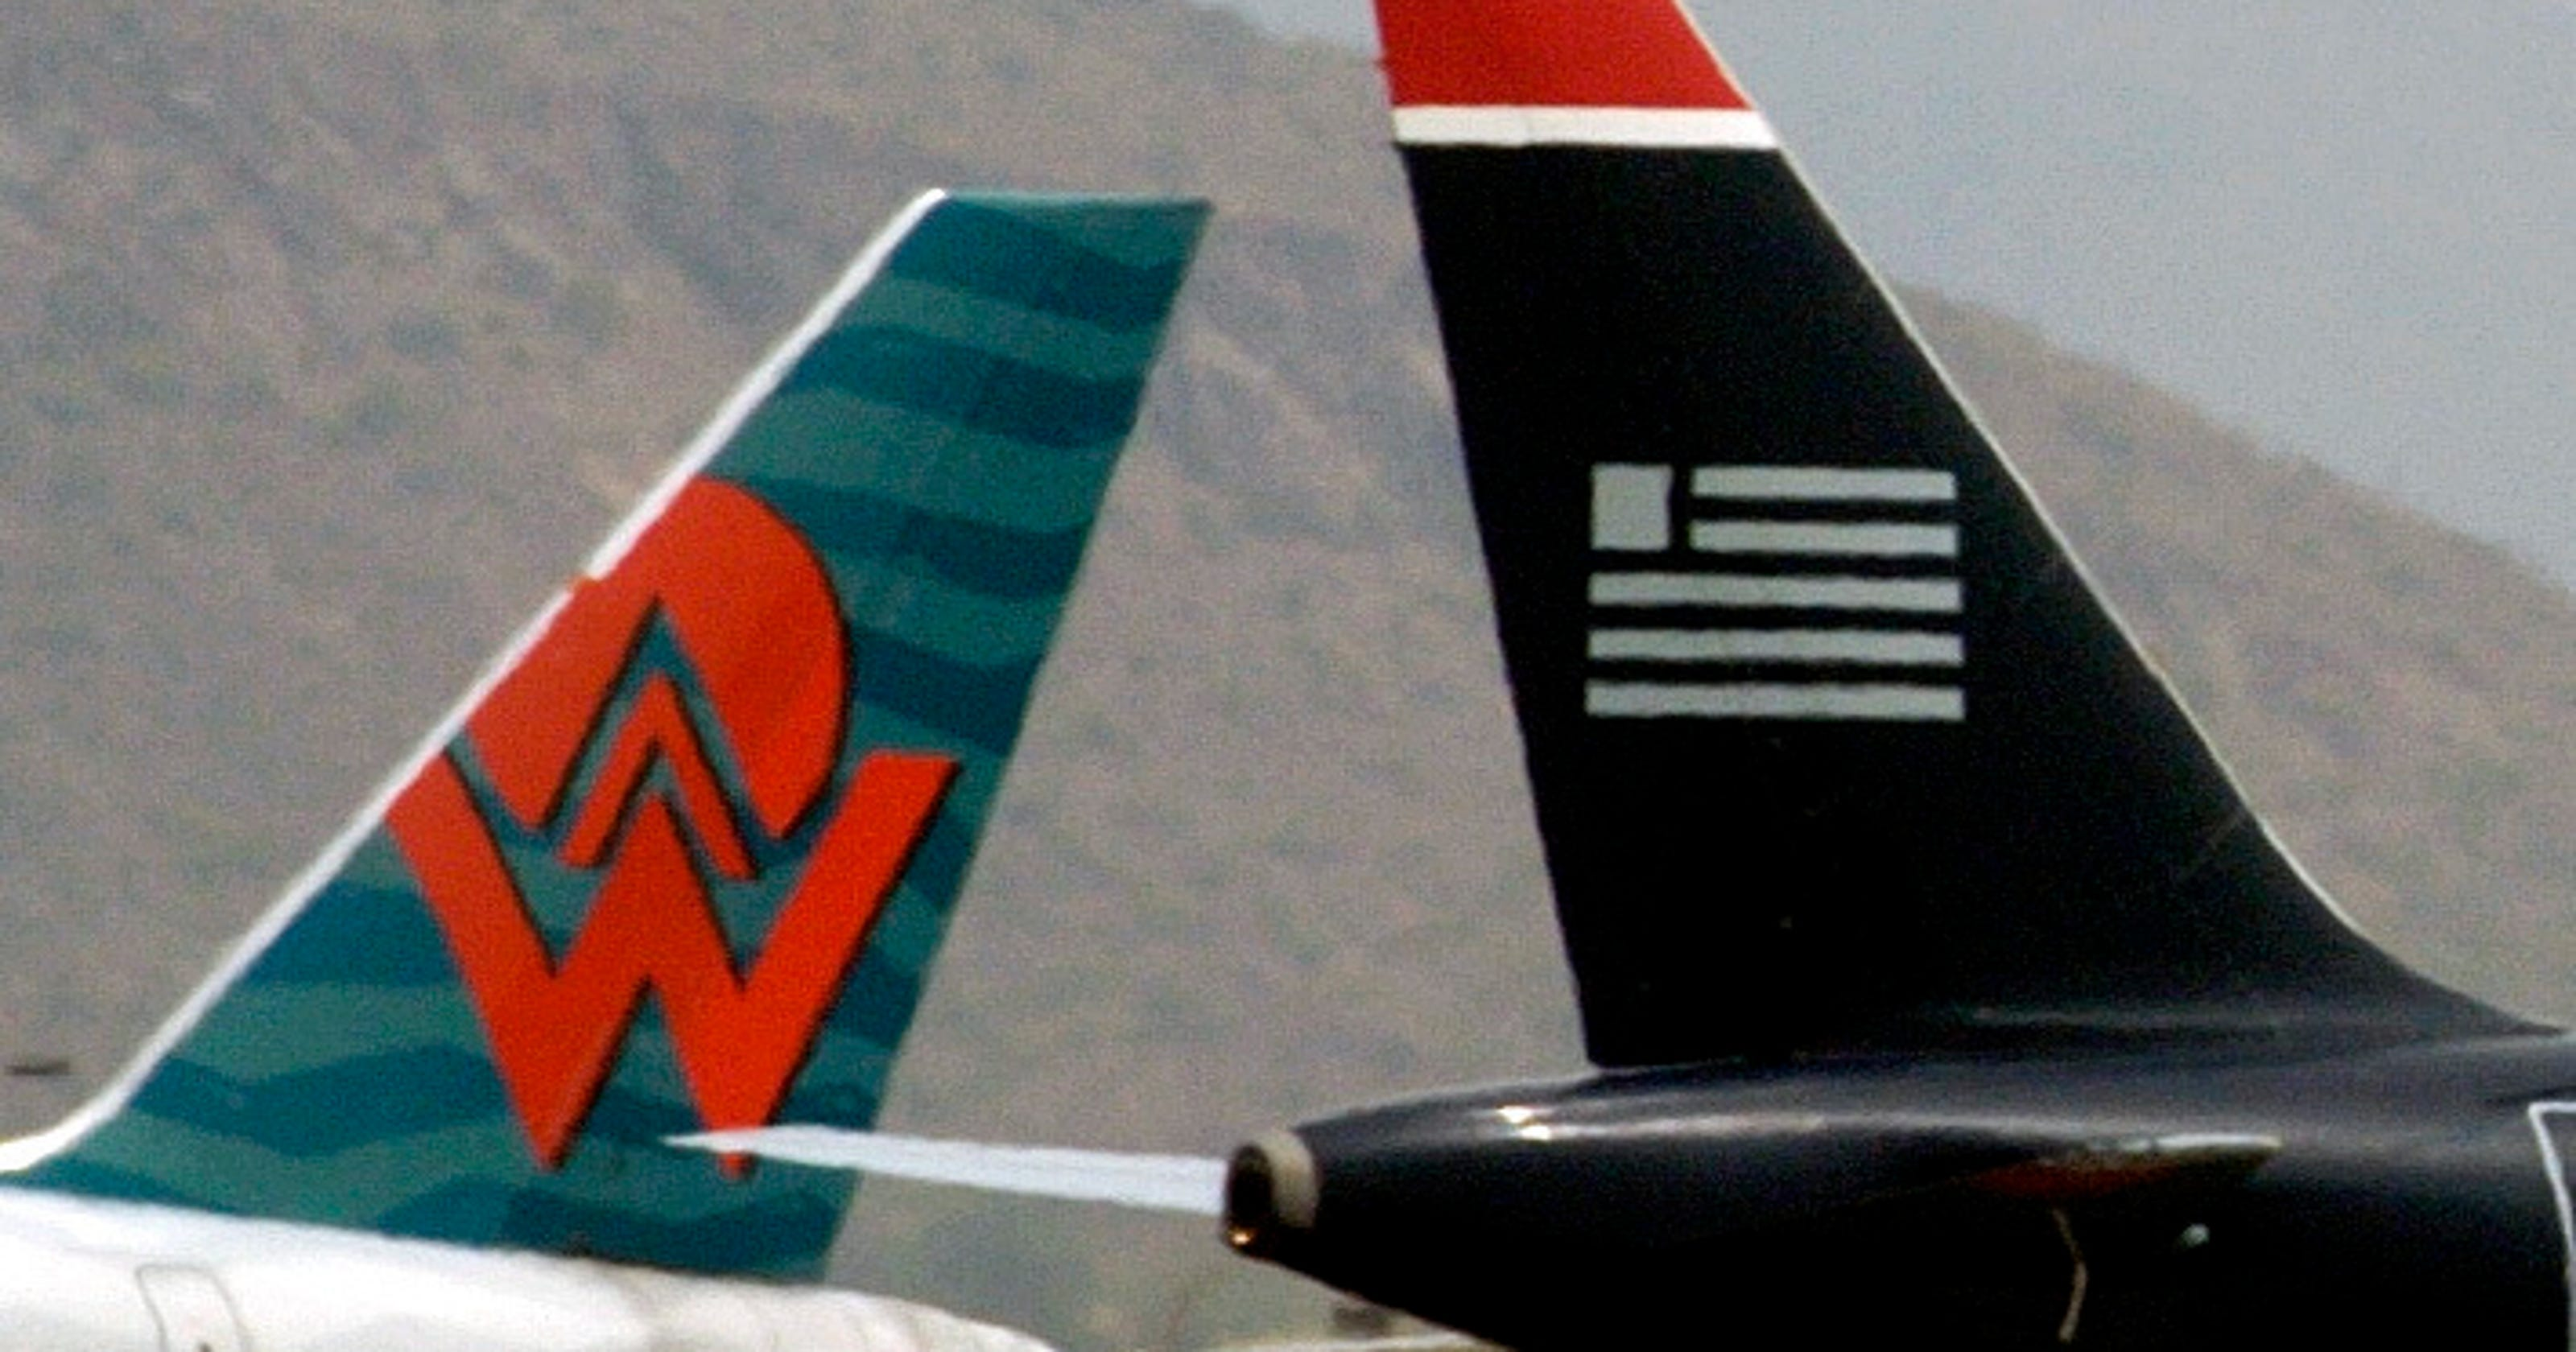 Adios Cactus Longtime Airline Call Sign Disappears In Merger